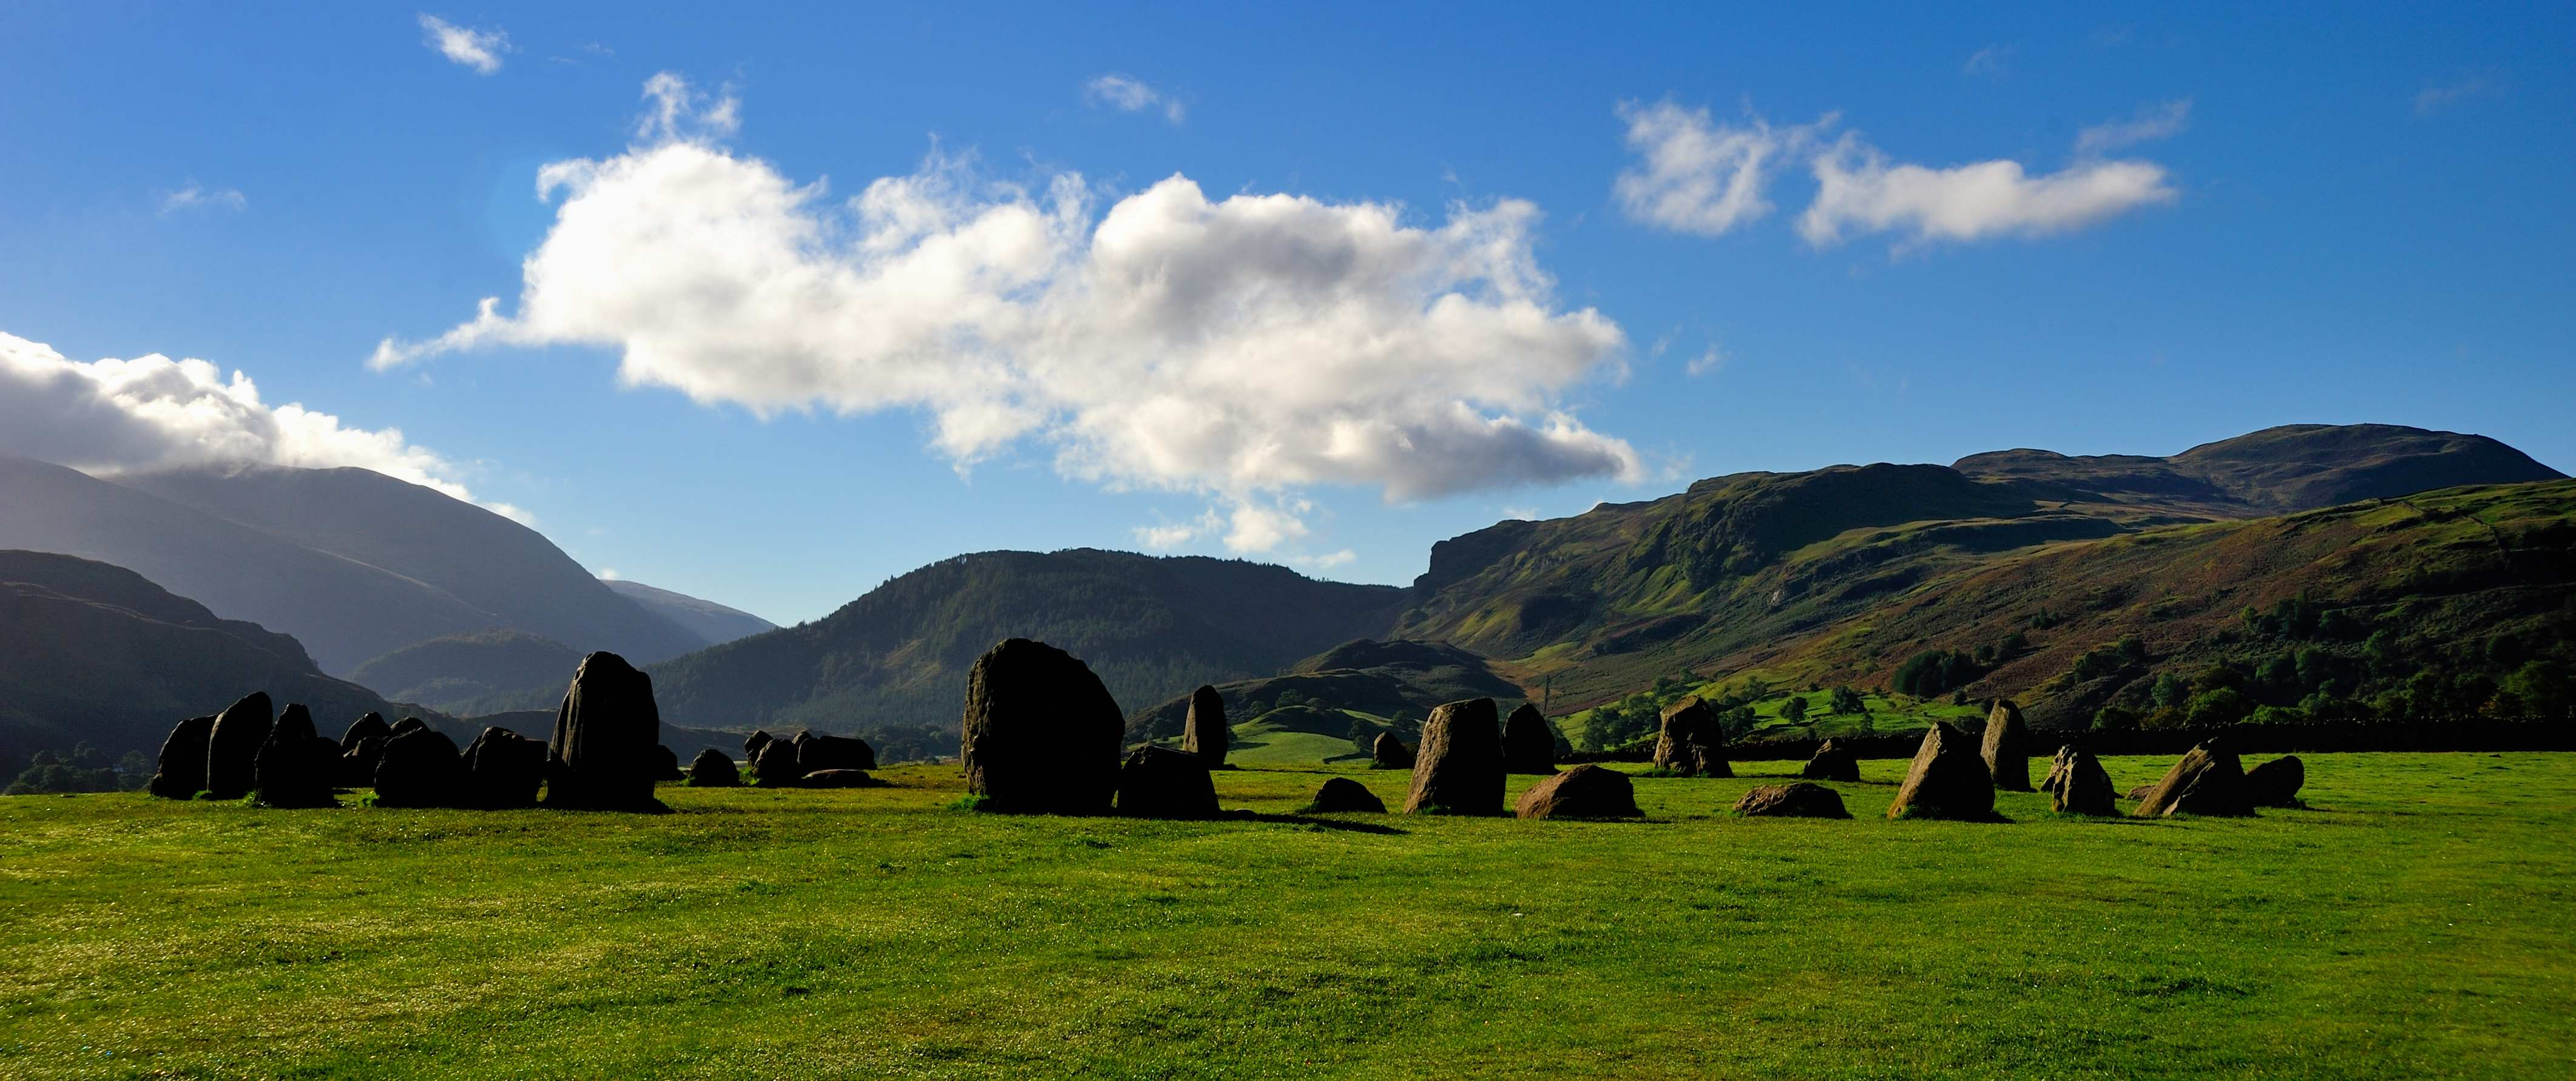 Morning at Castlerigg